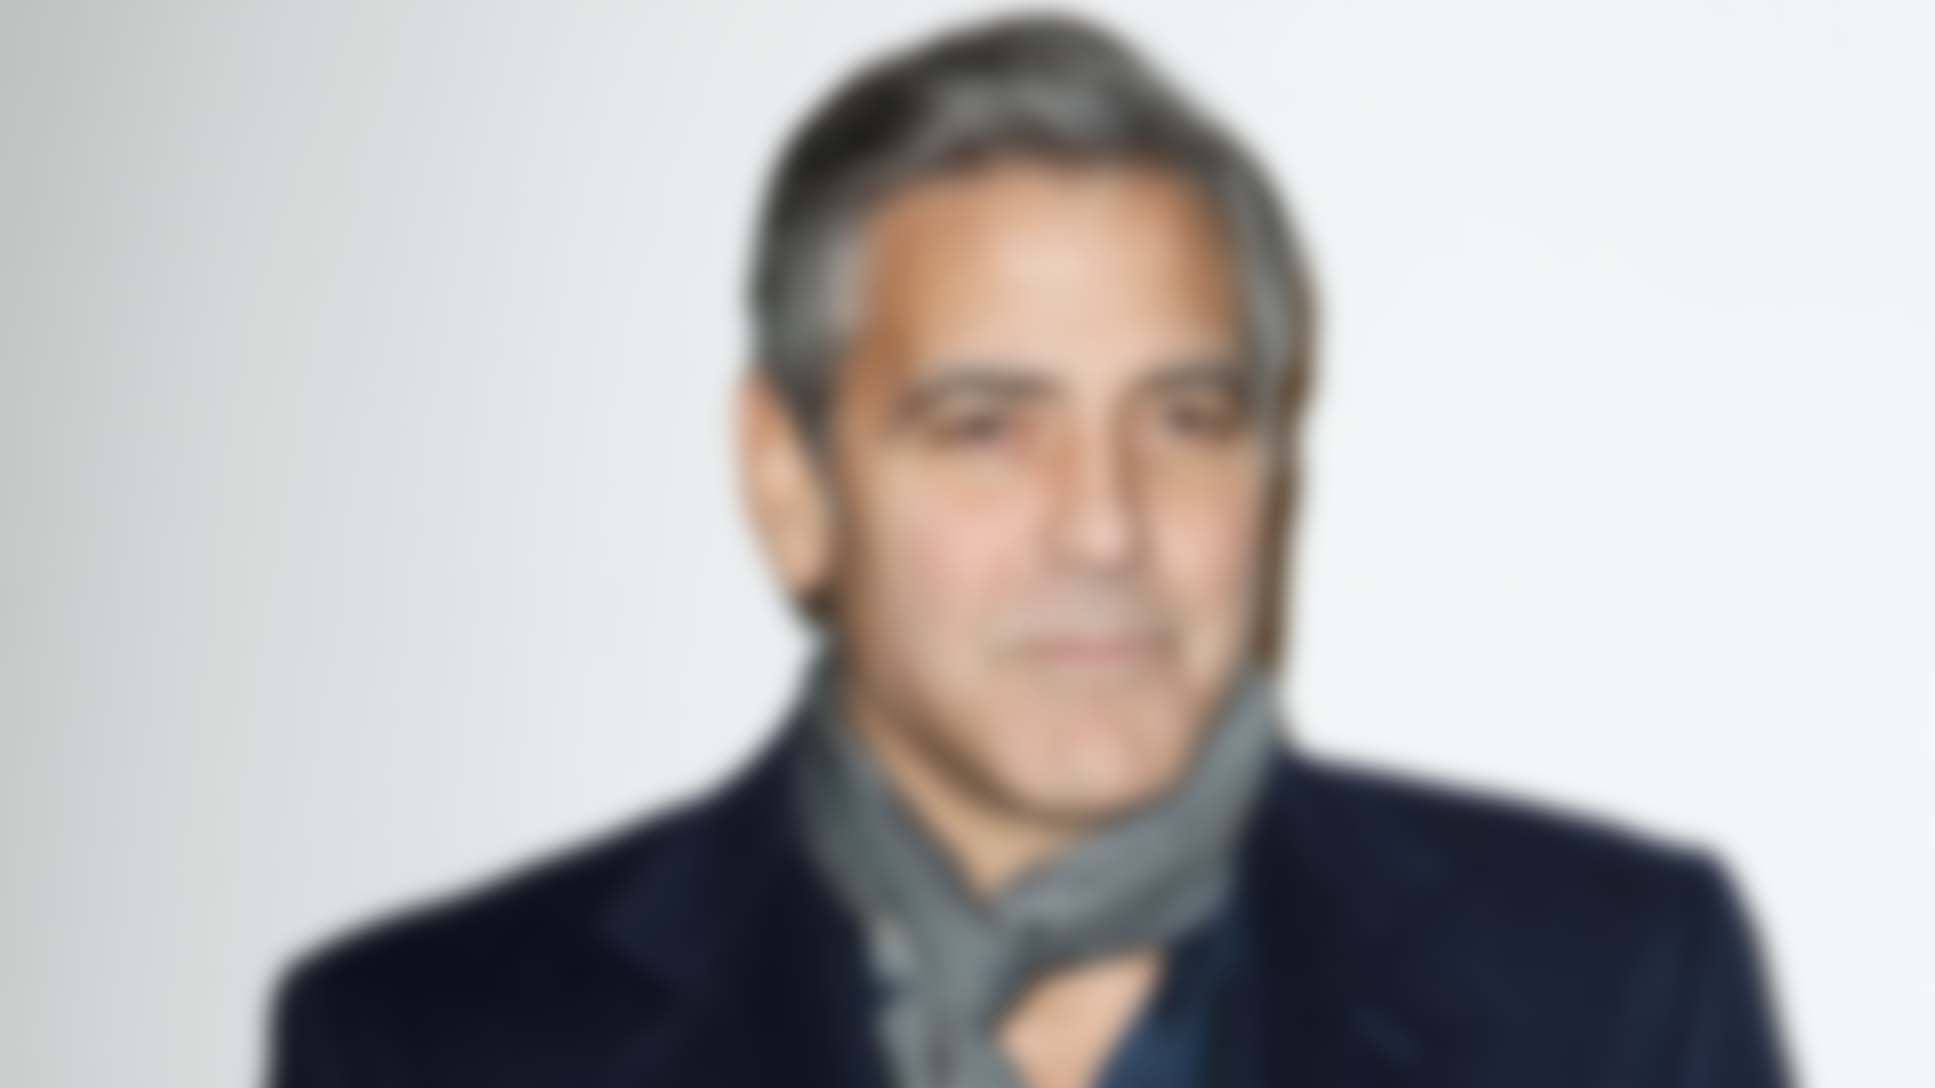 Increasingly Blurry Pictures Of George Clooney To Help You Get Used To The Idea That He's Not Always Going To Be Around Zcfh8o35p5yr7zazejlp